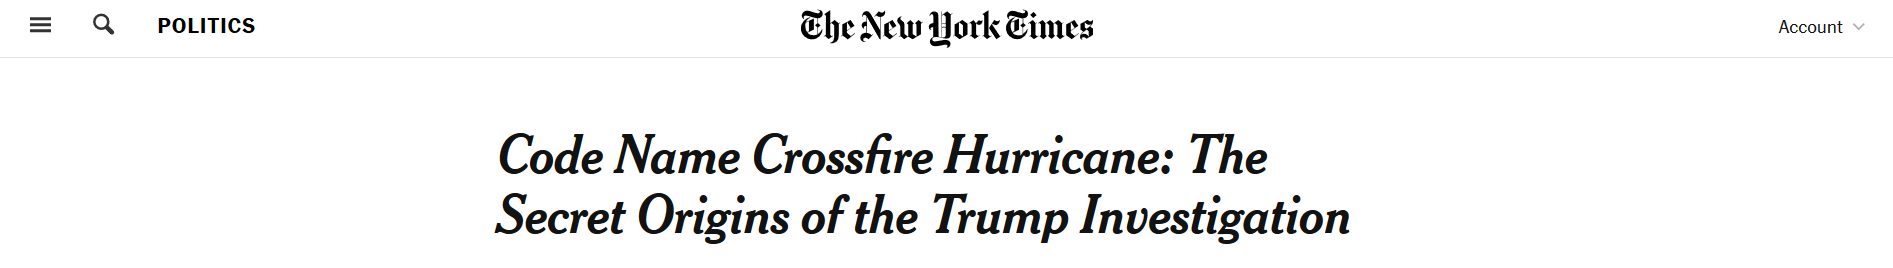 Crossfire Hurrican NYT.png